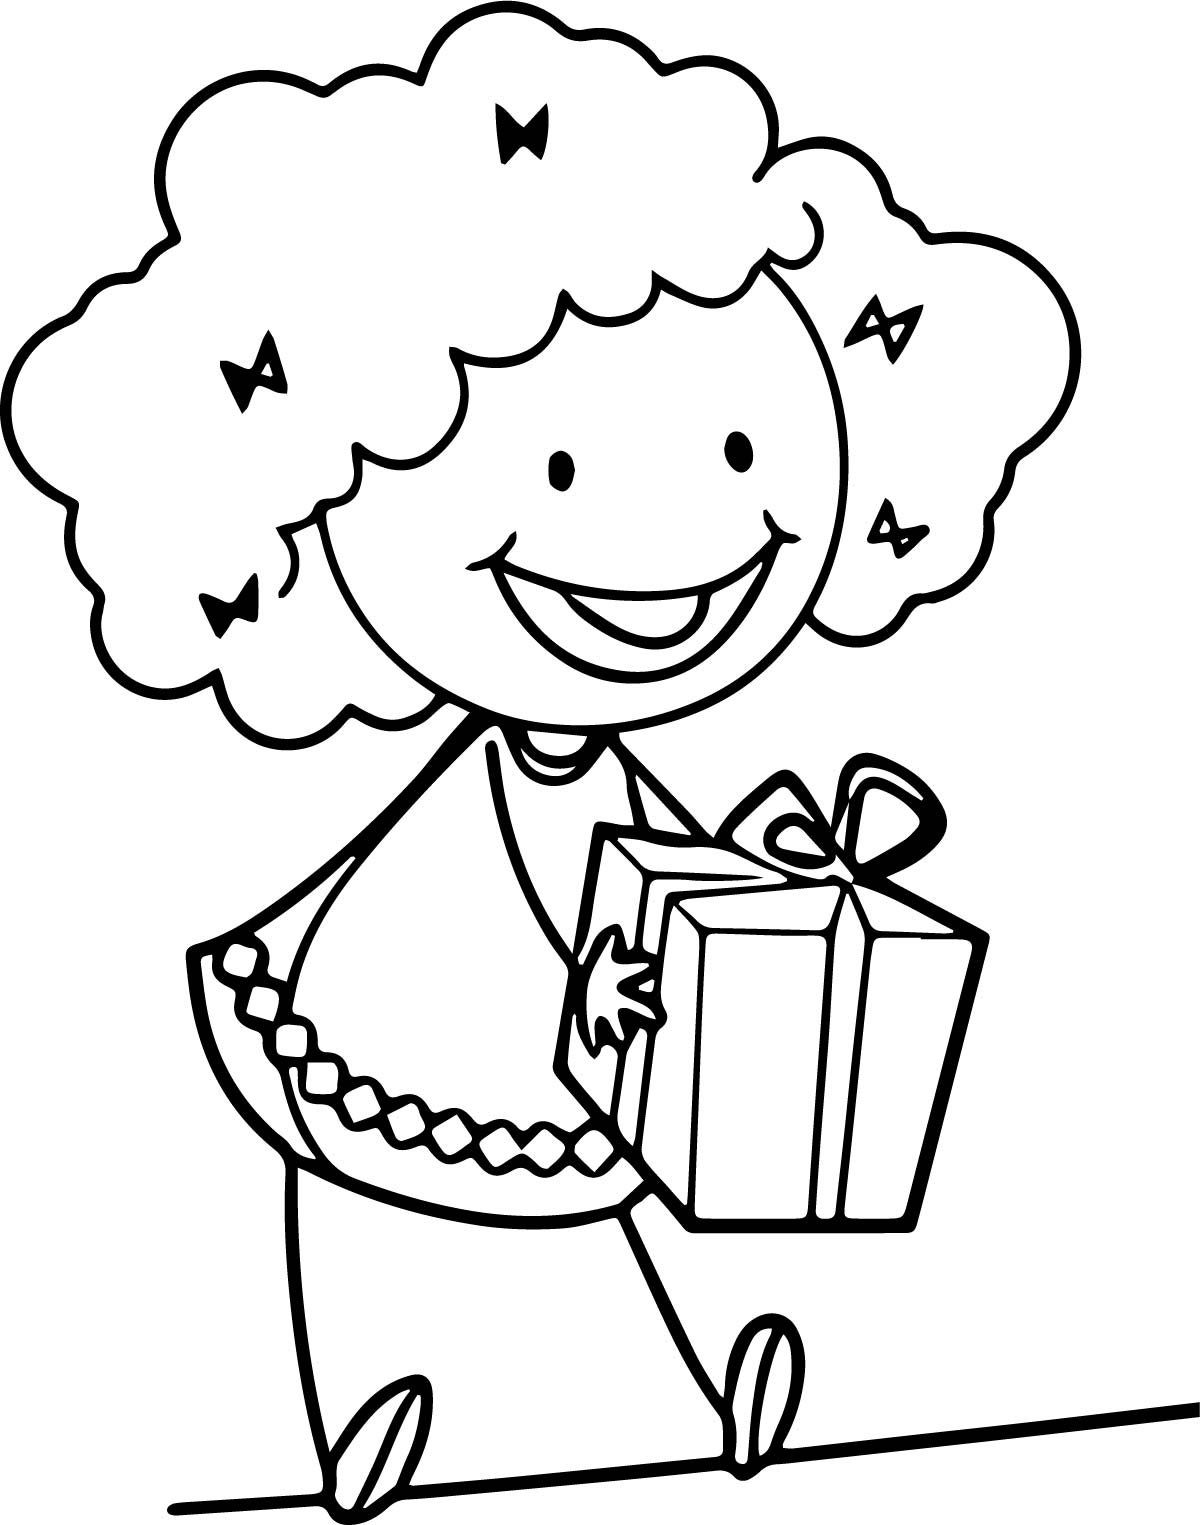 Give A Surprise Girl Happy Coloring Page